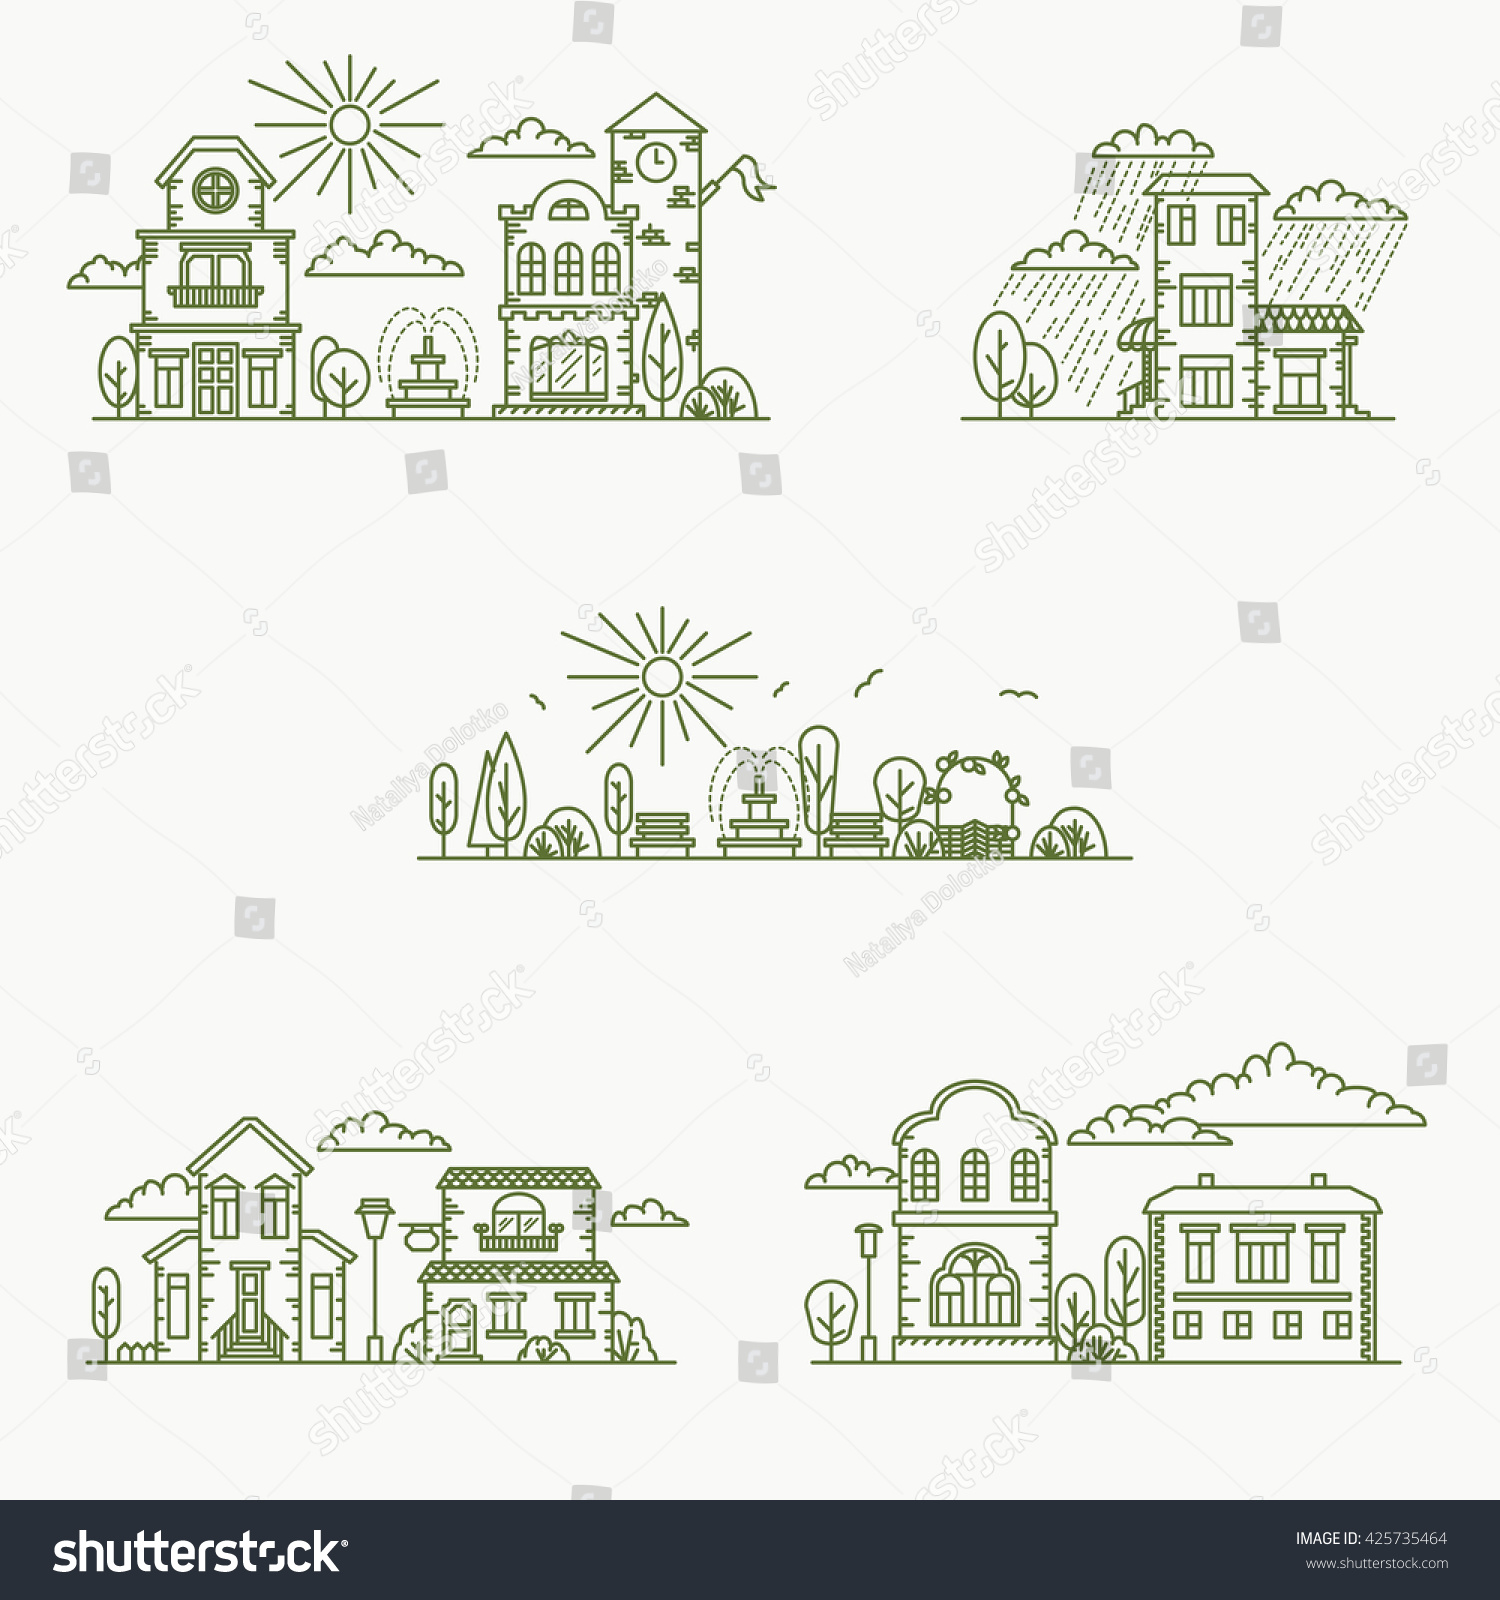 Coloring book real estate - Real Estate City Buildings Stock Vector Line Art Illustration